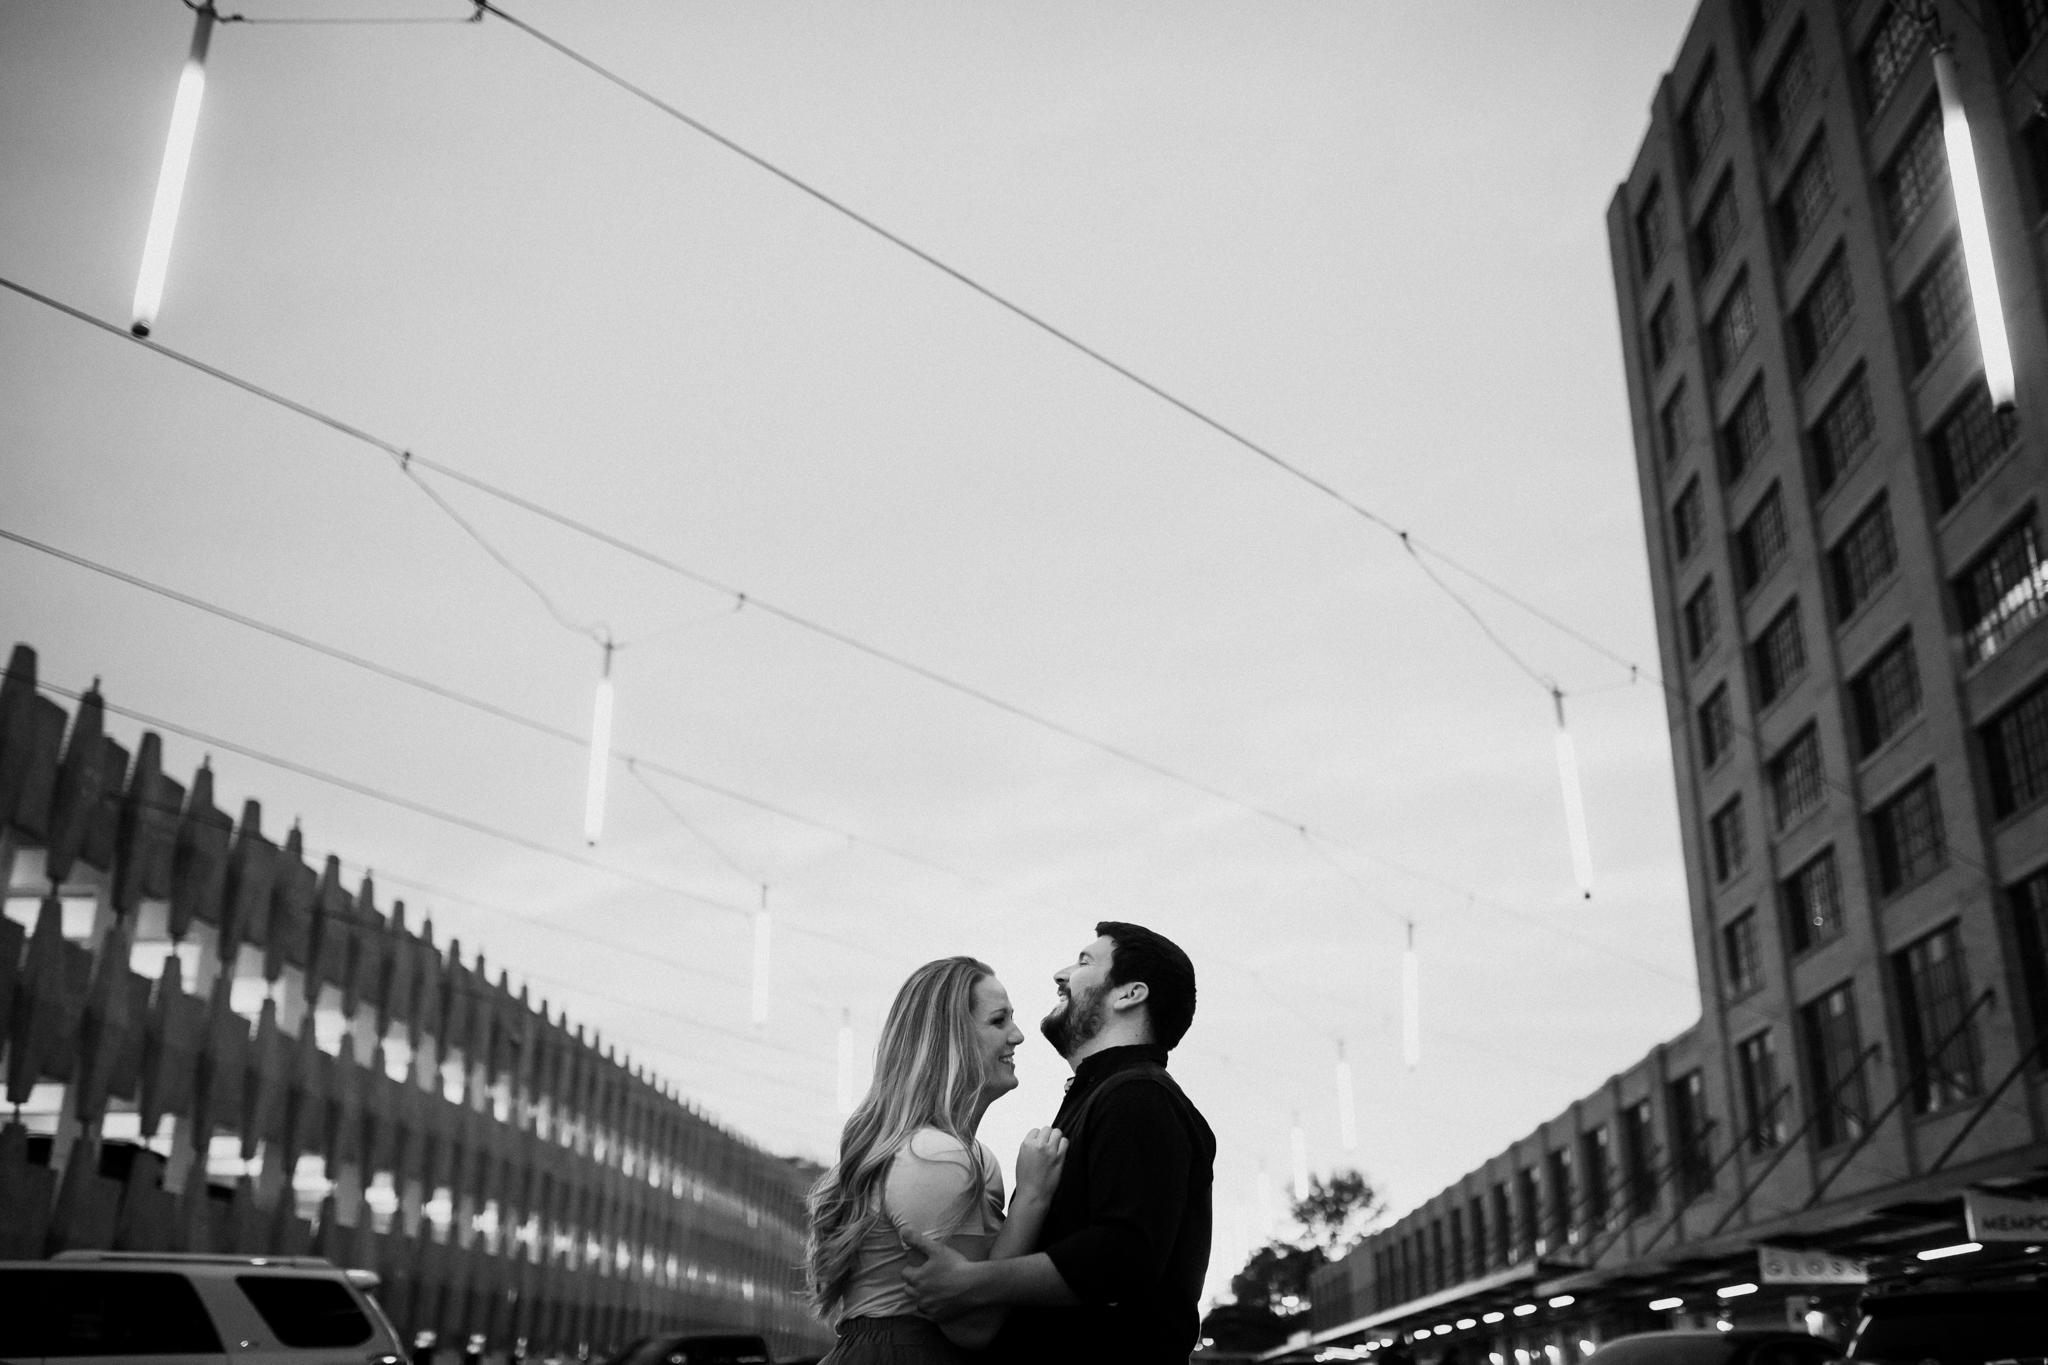 wiseacre-brewing-wedding-photographer-the-warmth-around-you-cassie-cook-photography (59 of 64).jpg